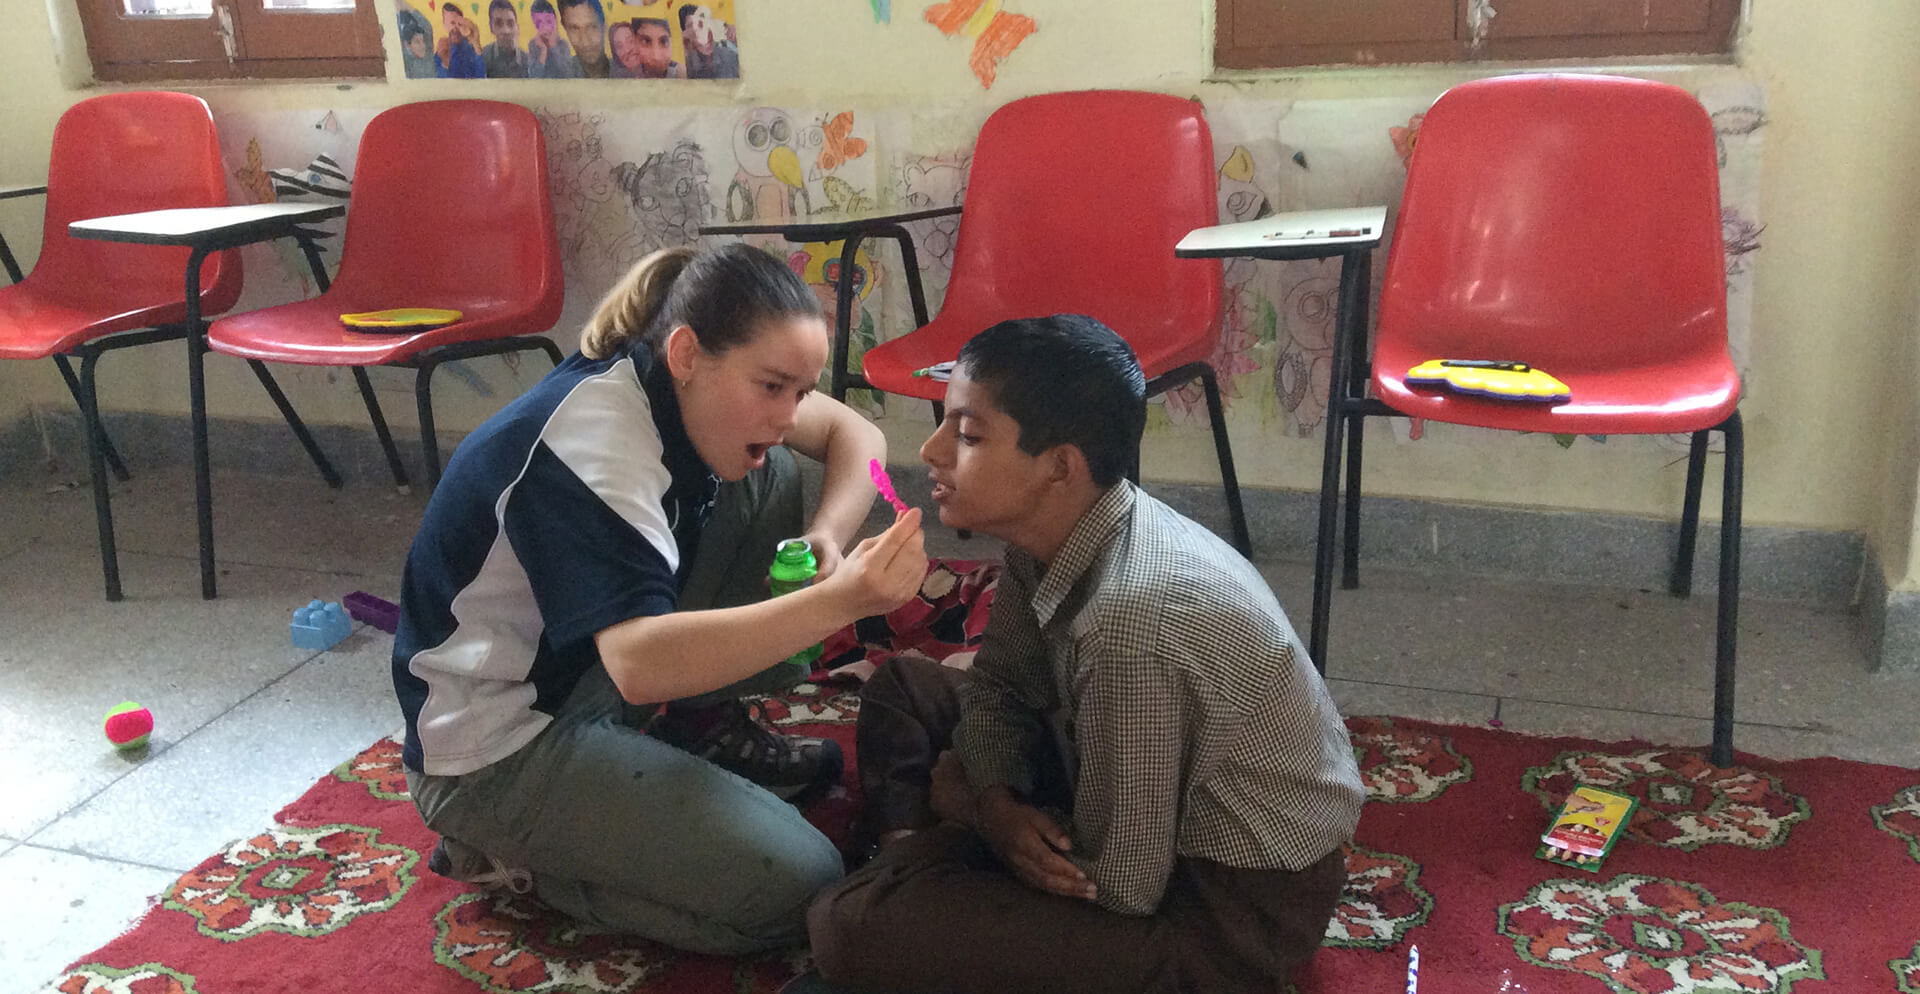 Disabled Care & Special Need Volunteer Abroad